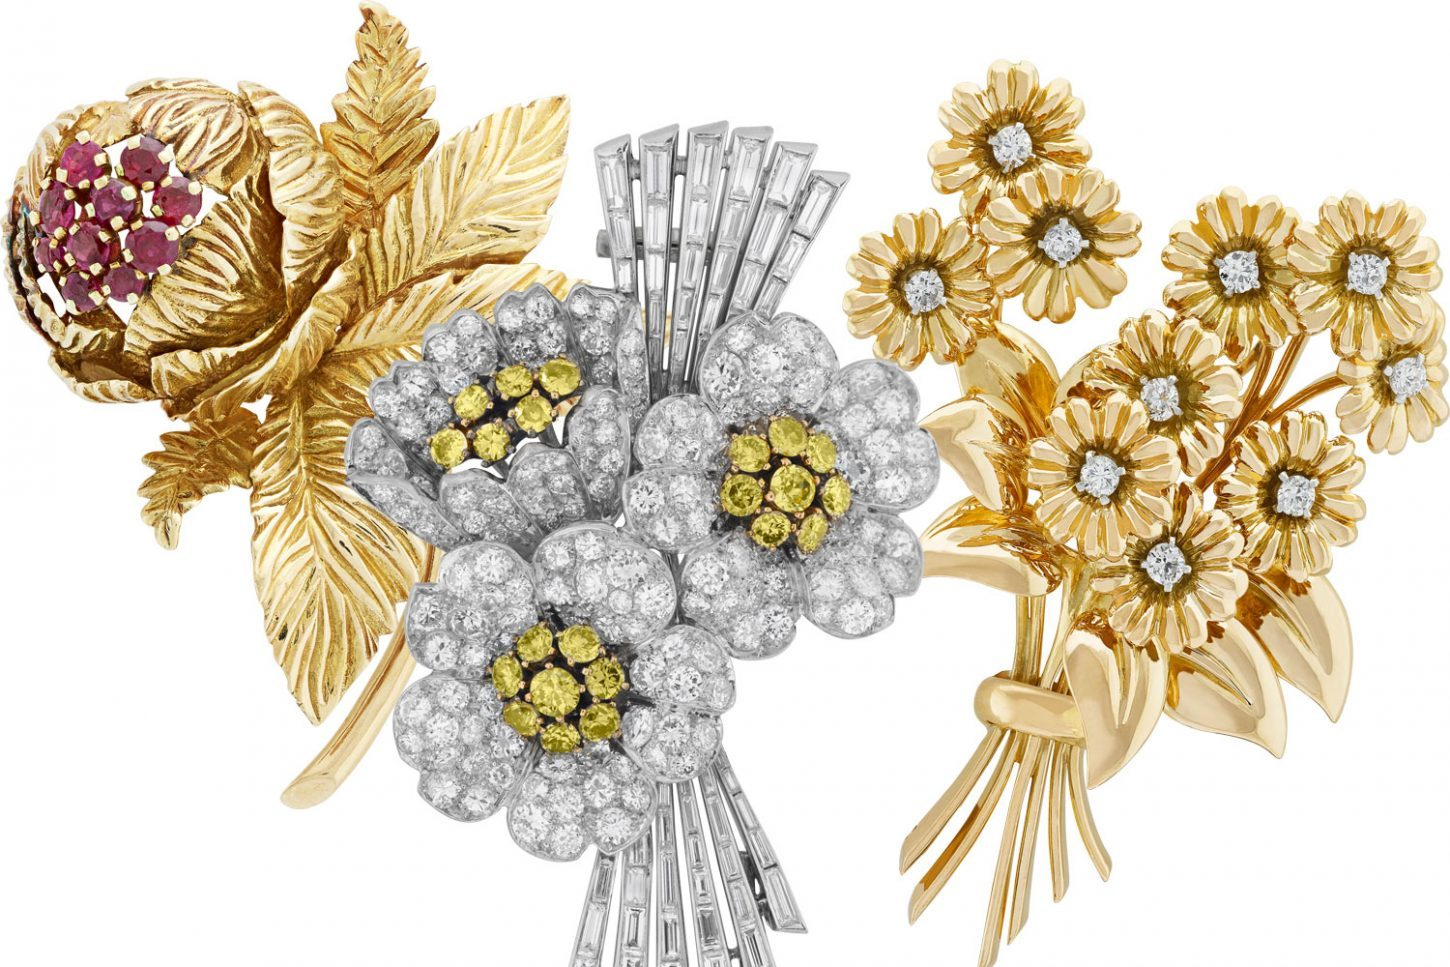 van-cleef-arpels-air-printemps